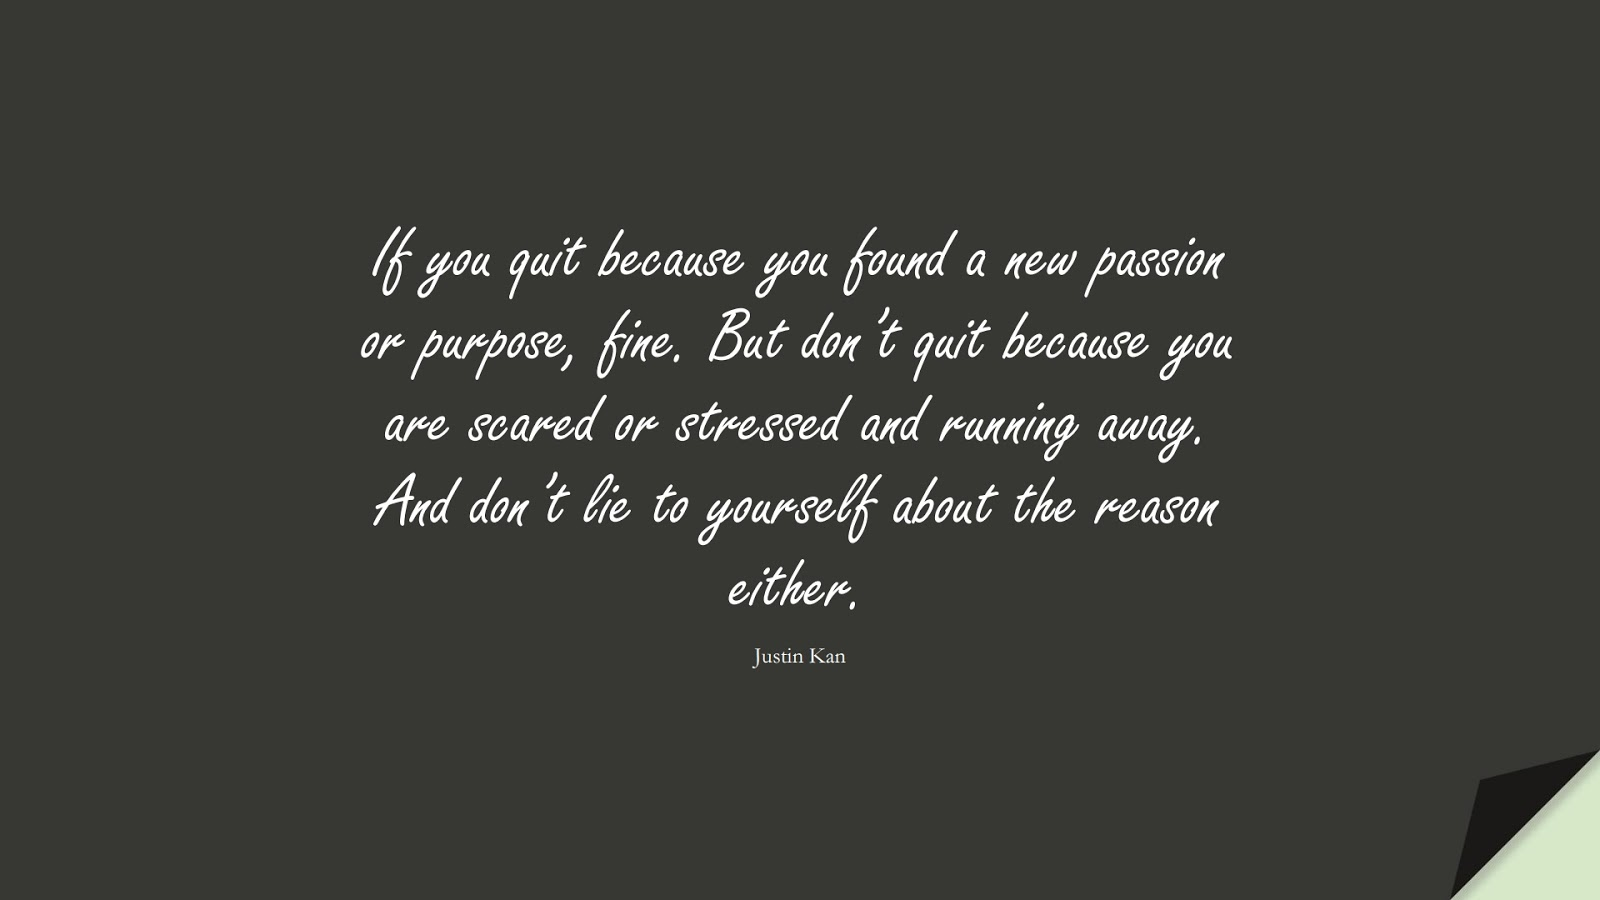 If you quit because you found a new passion or purpose, fine. But don't quit because you are scared or stressed and running away. And don't lie to yourself about the reason either. (Justin Kan);  #NeverGiveUpQuotes